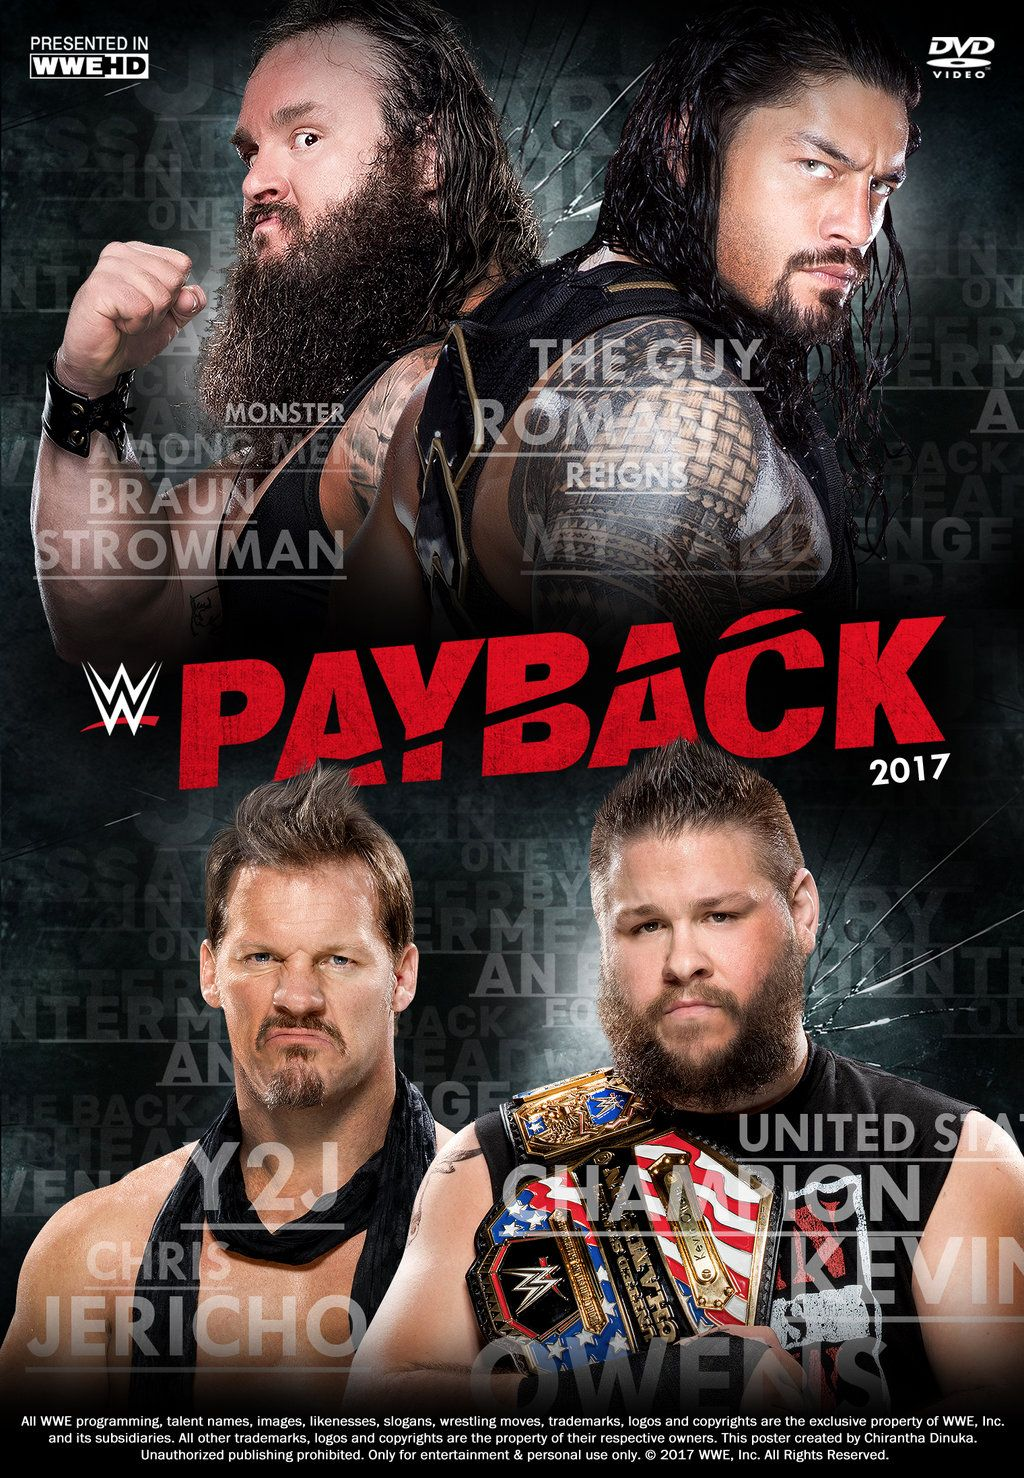 Wwe Payback 2017 Poster By Chirantha Wwe Full Movies Online Free Free Movies Online